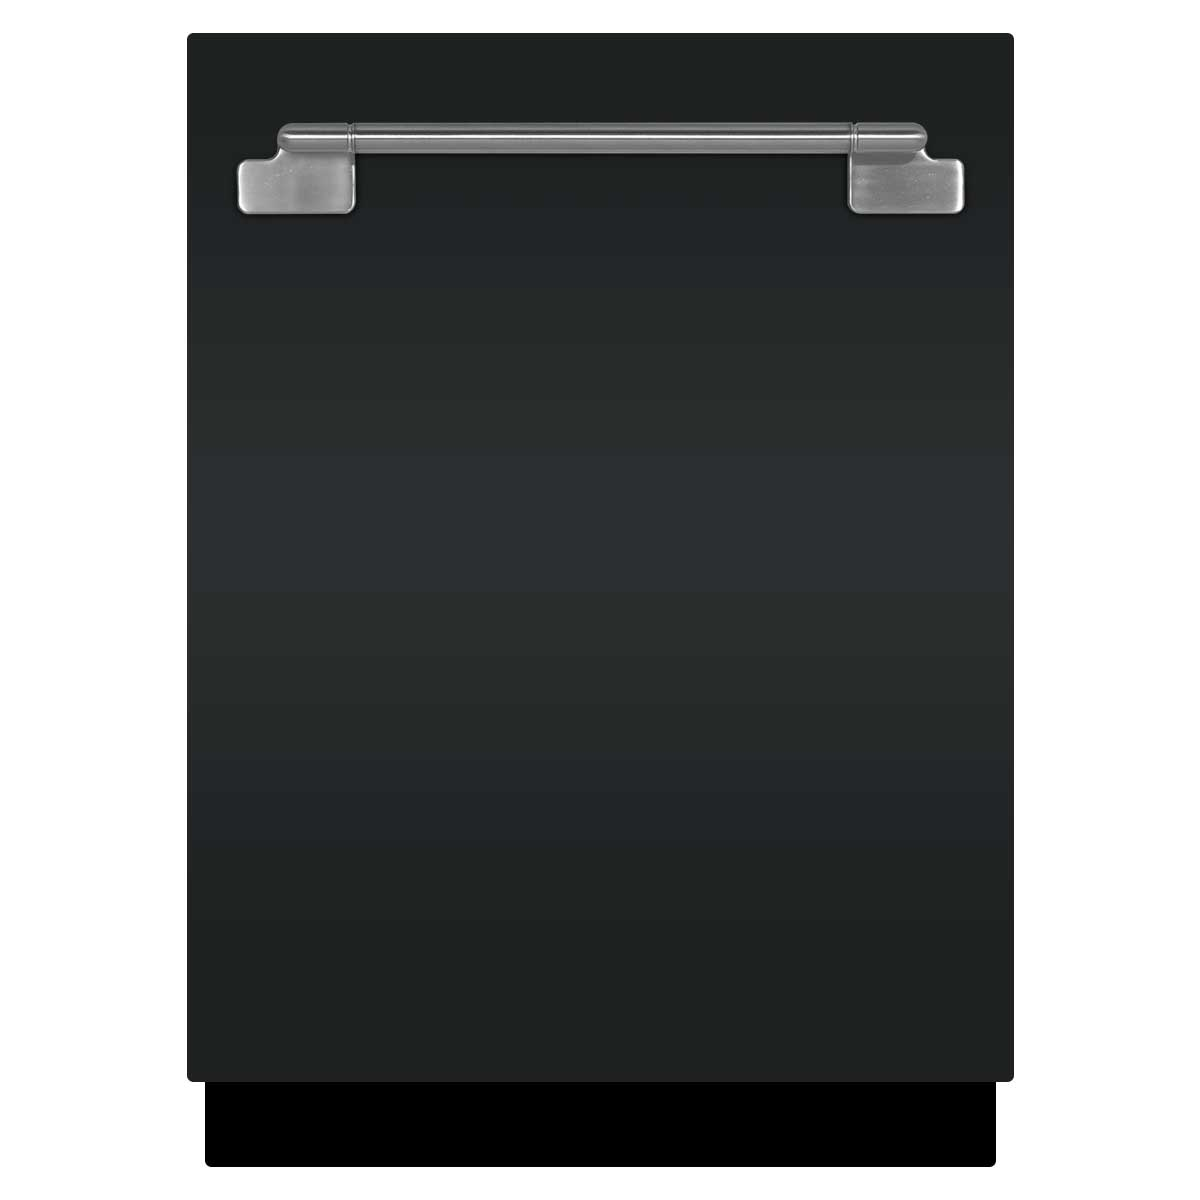 Aga Elise 24 Tall Tub Dishwasher Matte Black Aelttdw Mbl